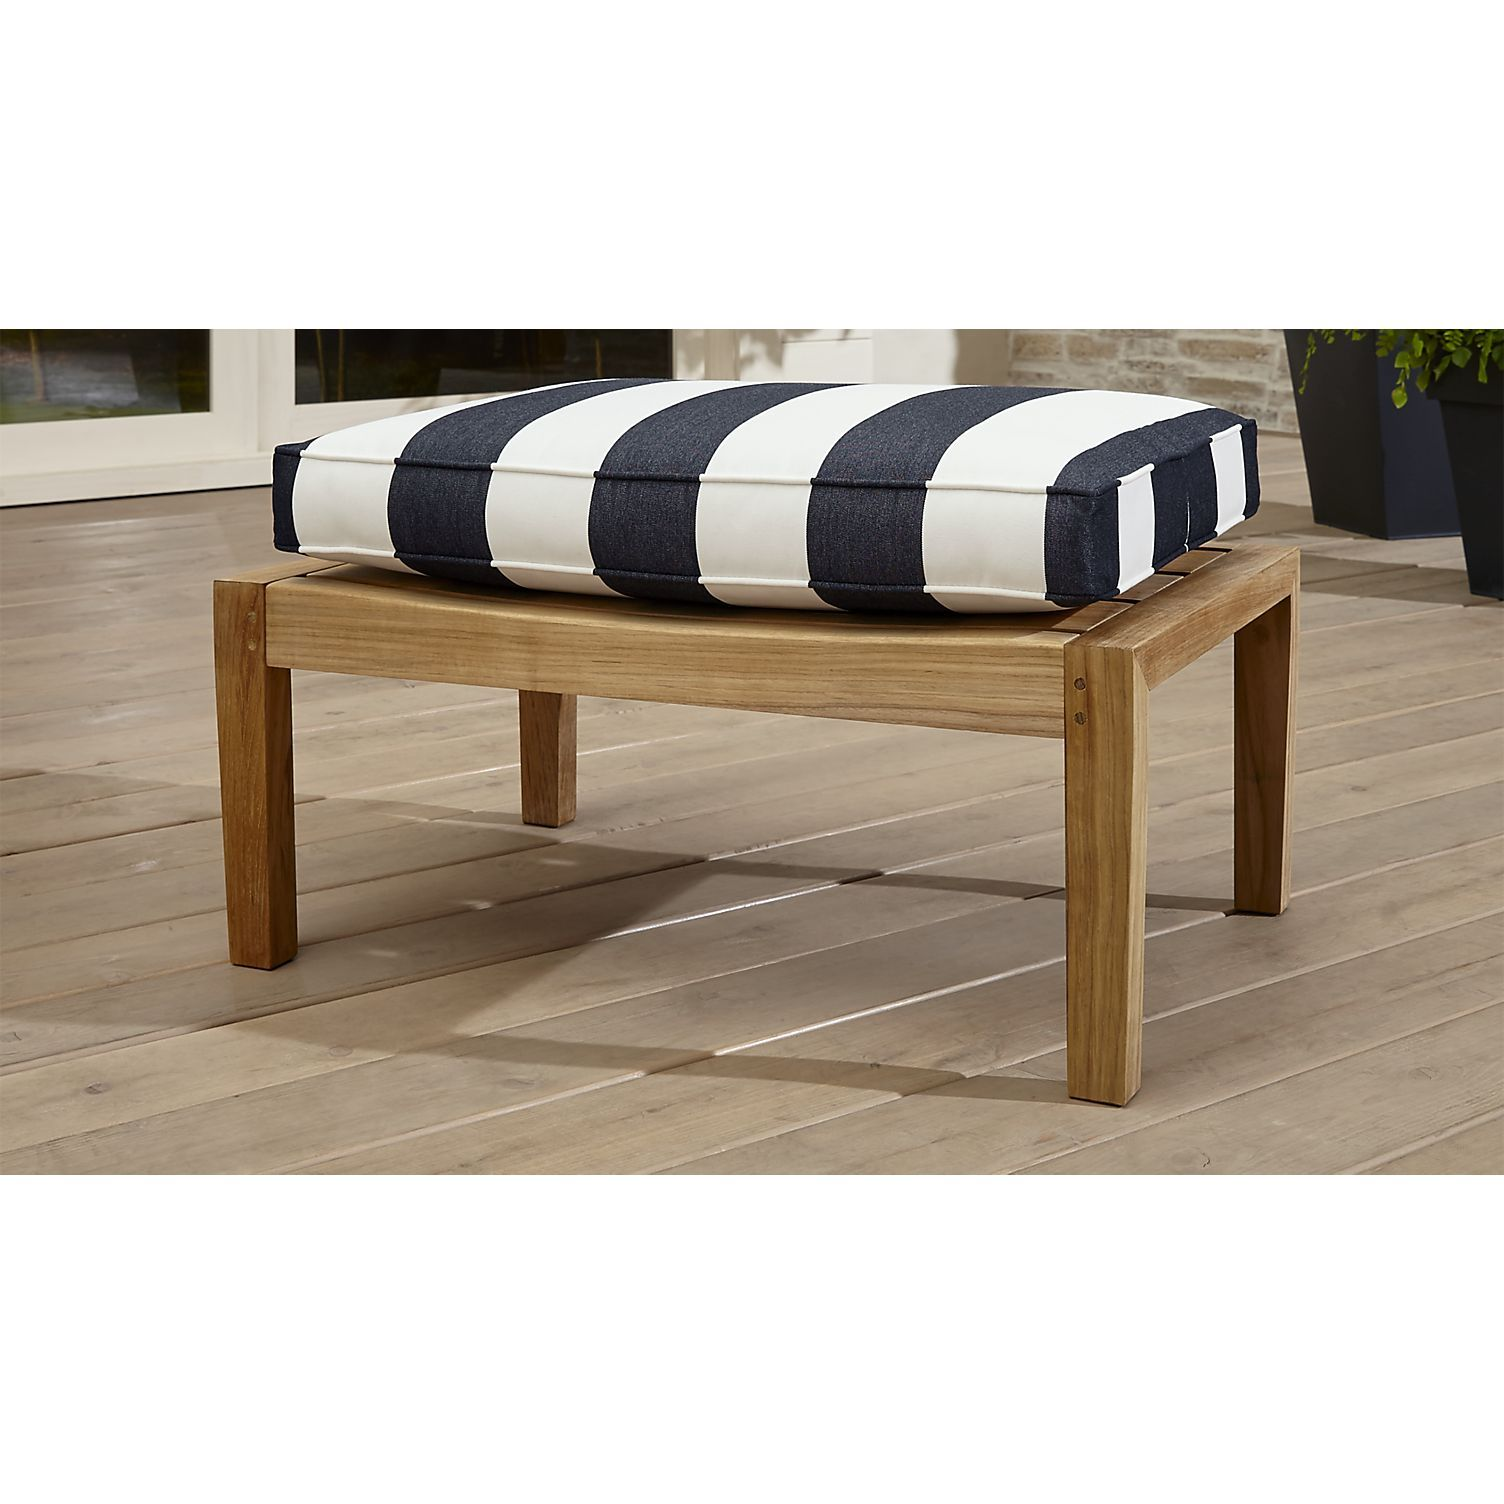 Regatta Natural Ottoman with Cabana Stripe Navy Sunbrella